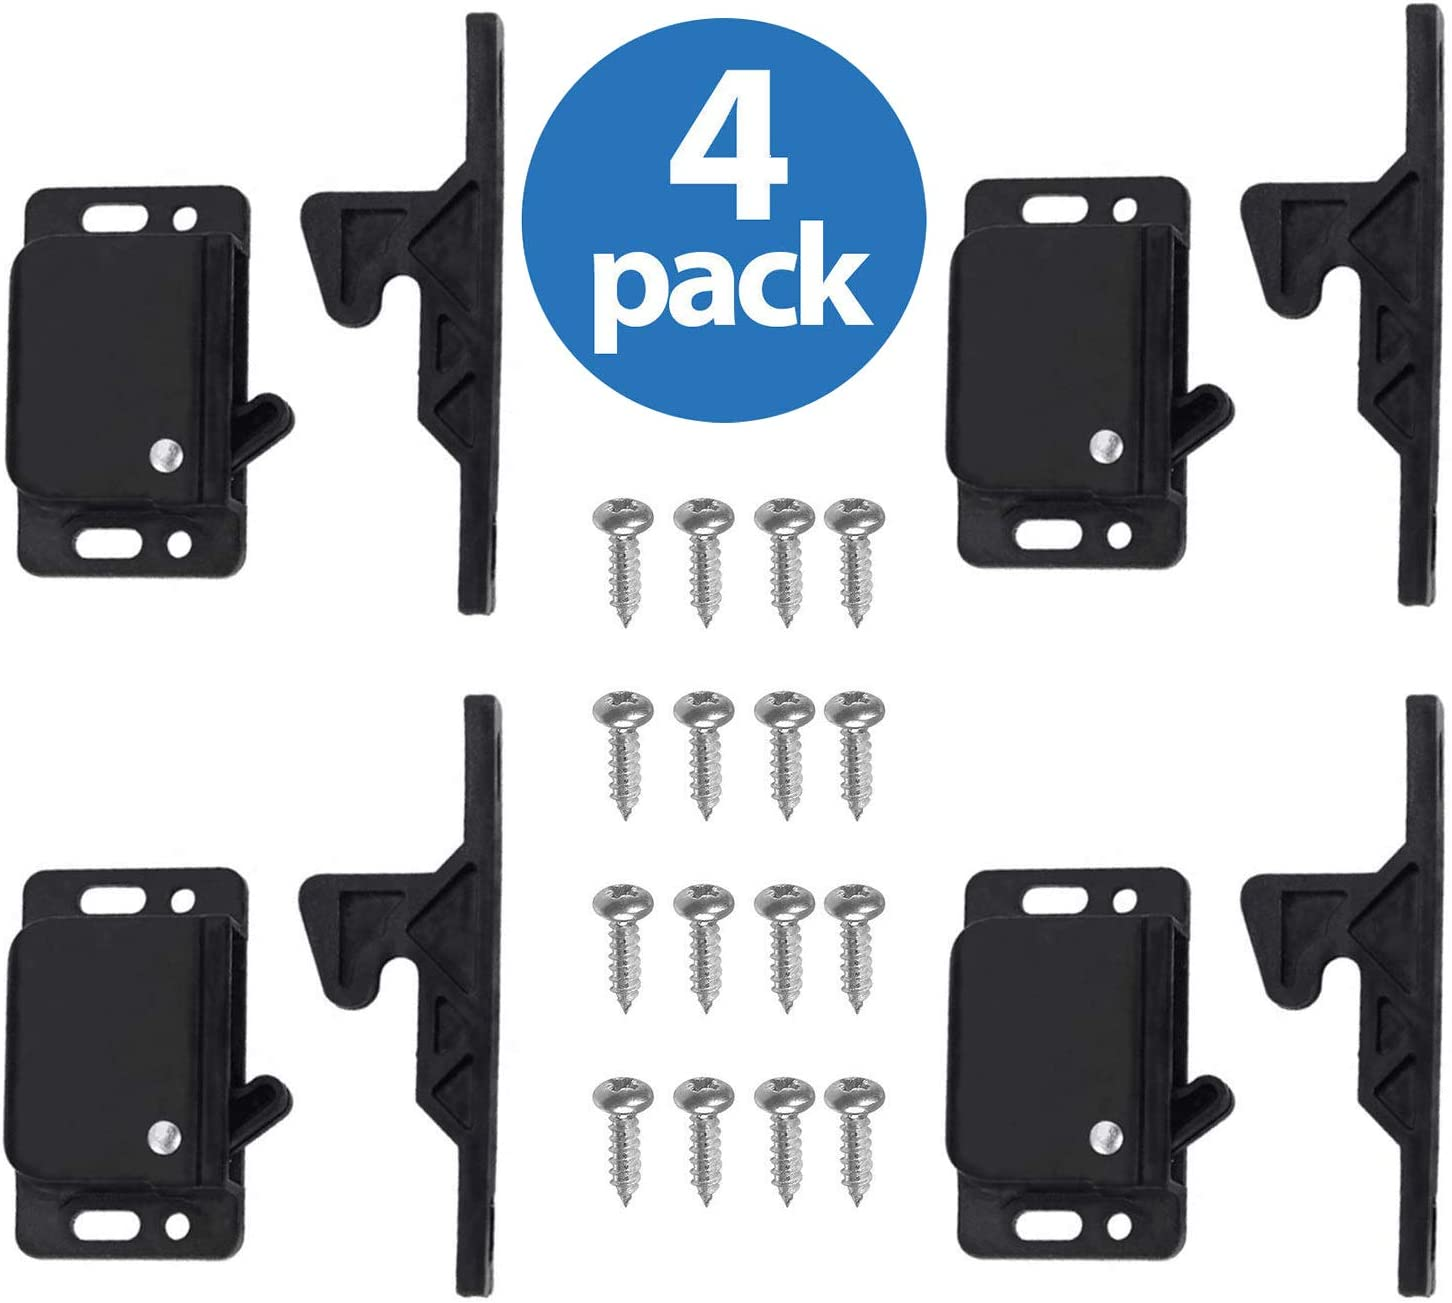 4 Grabber Catches 10 LB Pull Force Cabinet Doors Push to Close Latch RV Drawer Latches and Catches Hardware Baby Proof for Camper, Home, Kitchen, Bathroom, Office